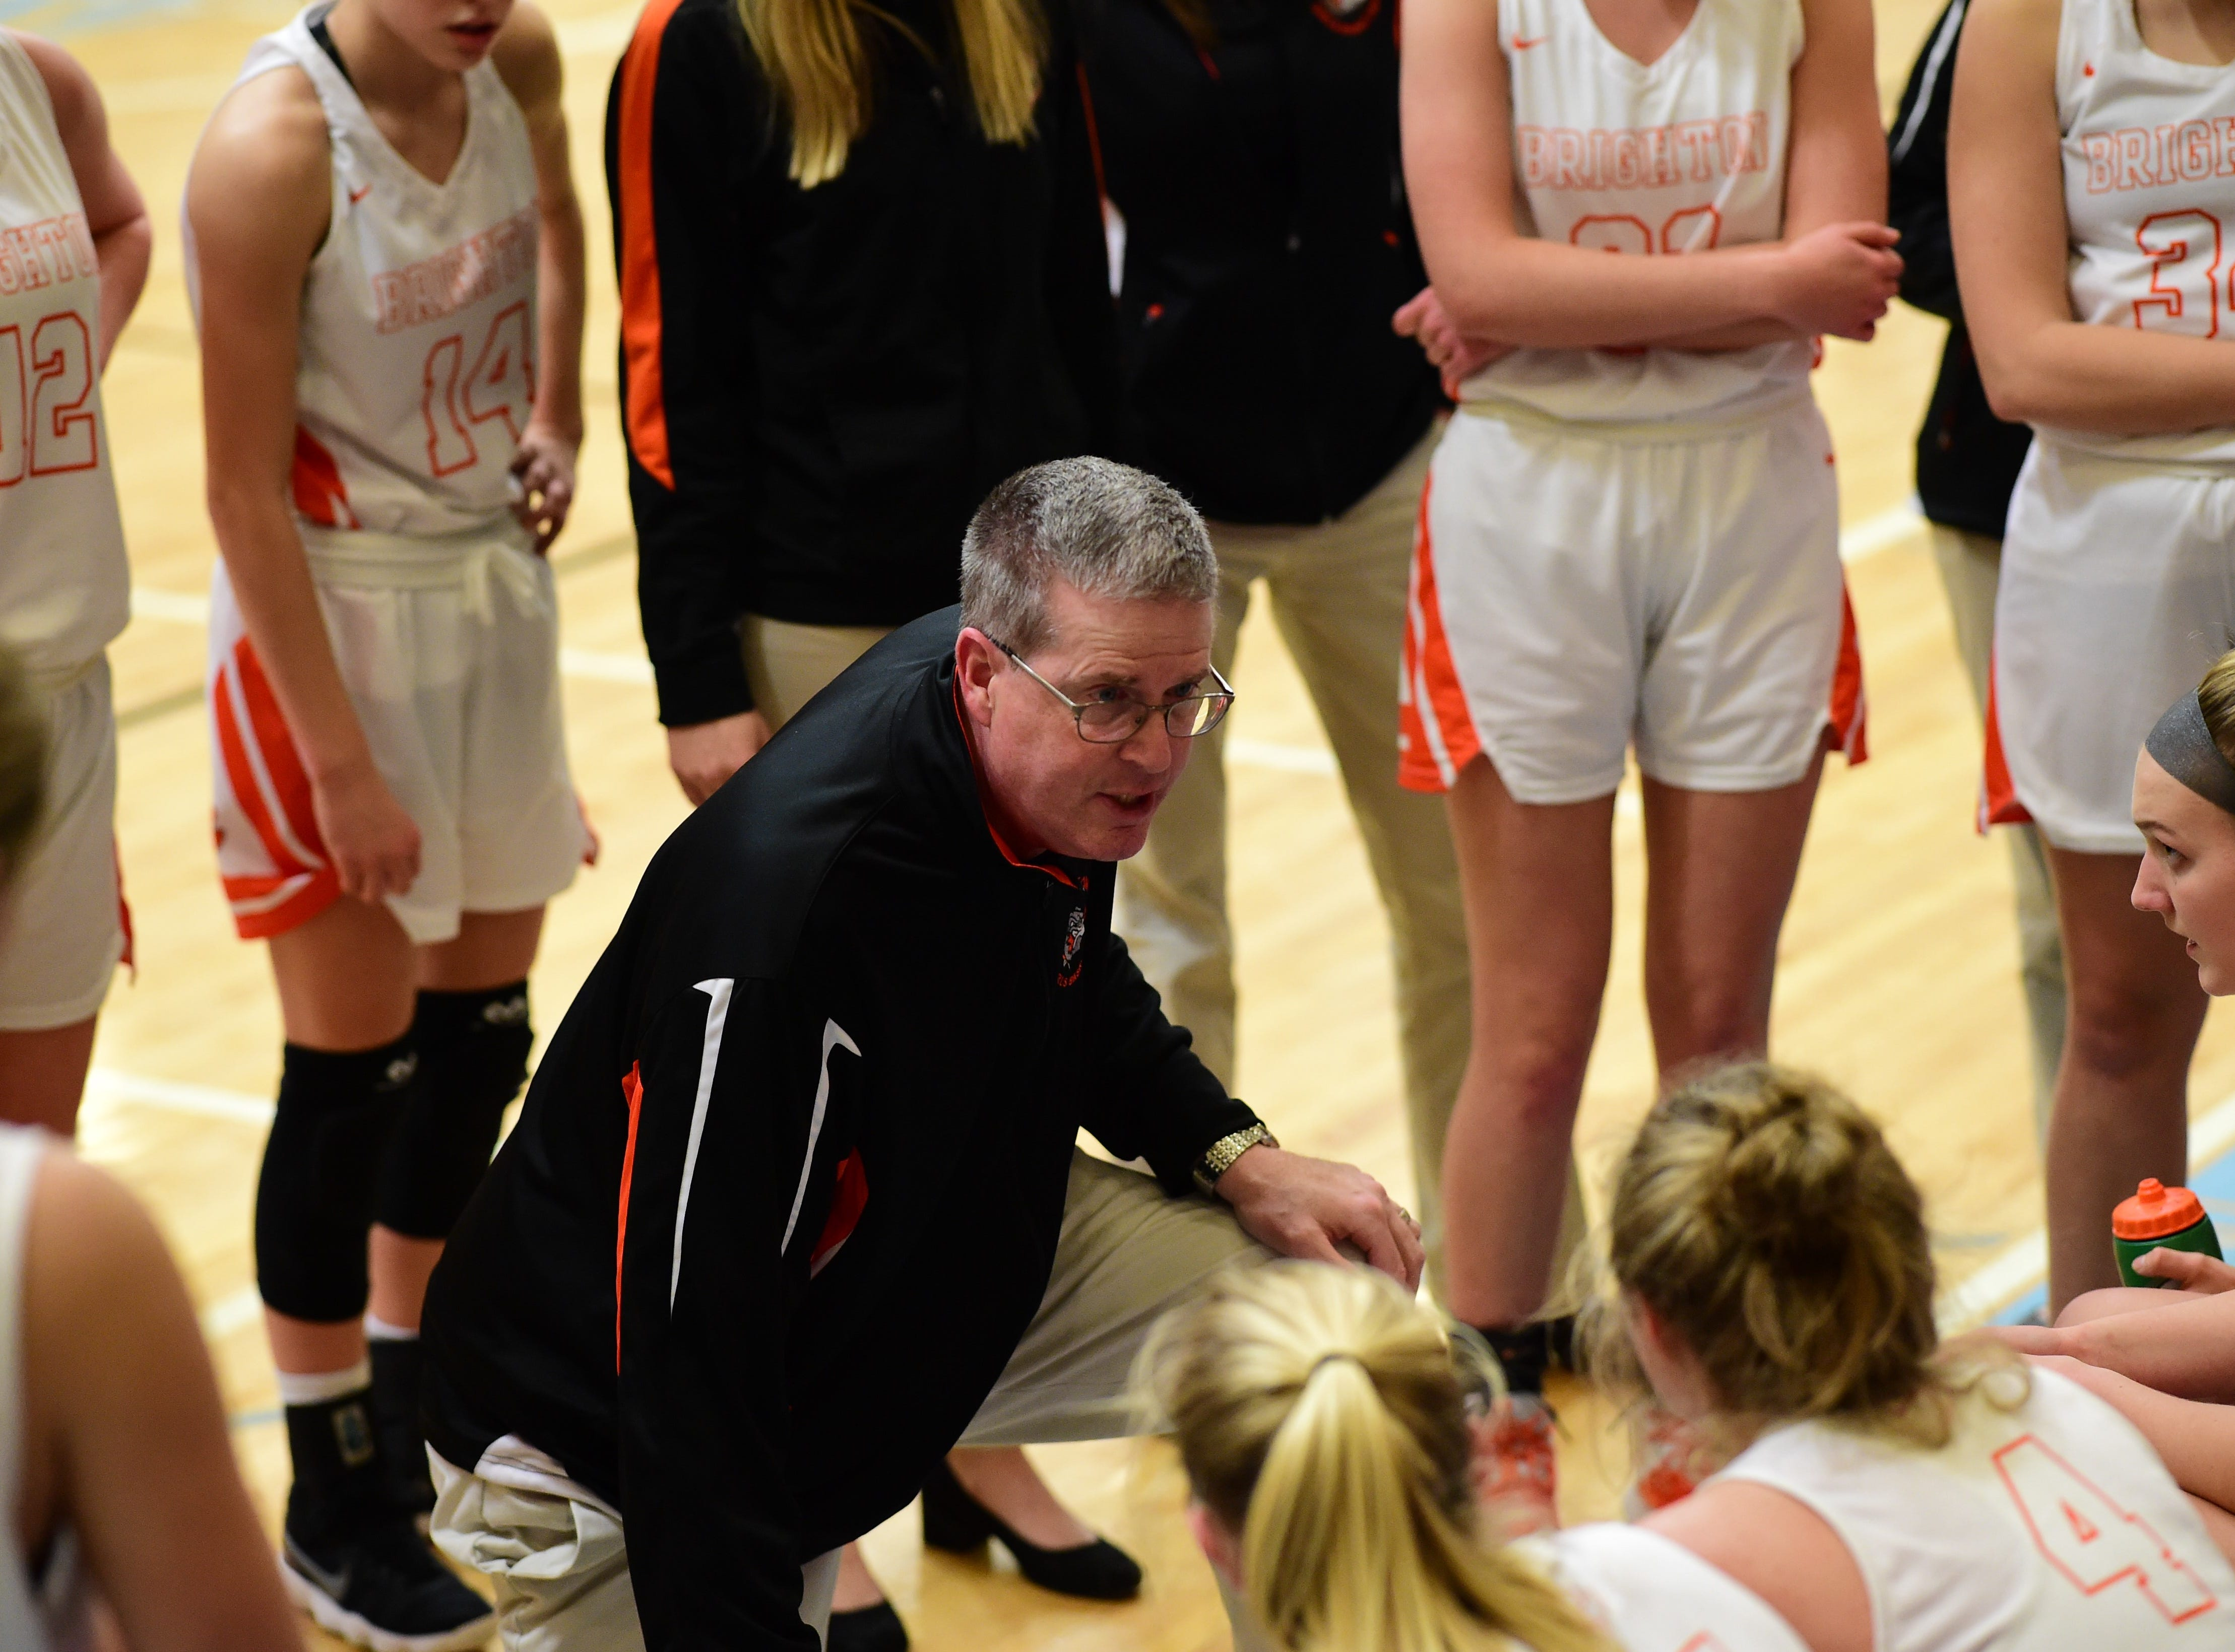 Brighton coach Paul Ash talks to his team during a timeout against Ann Arbor Pioneer on March 11, 2019.